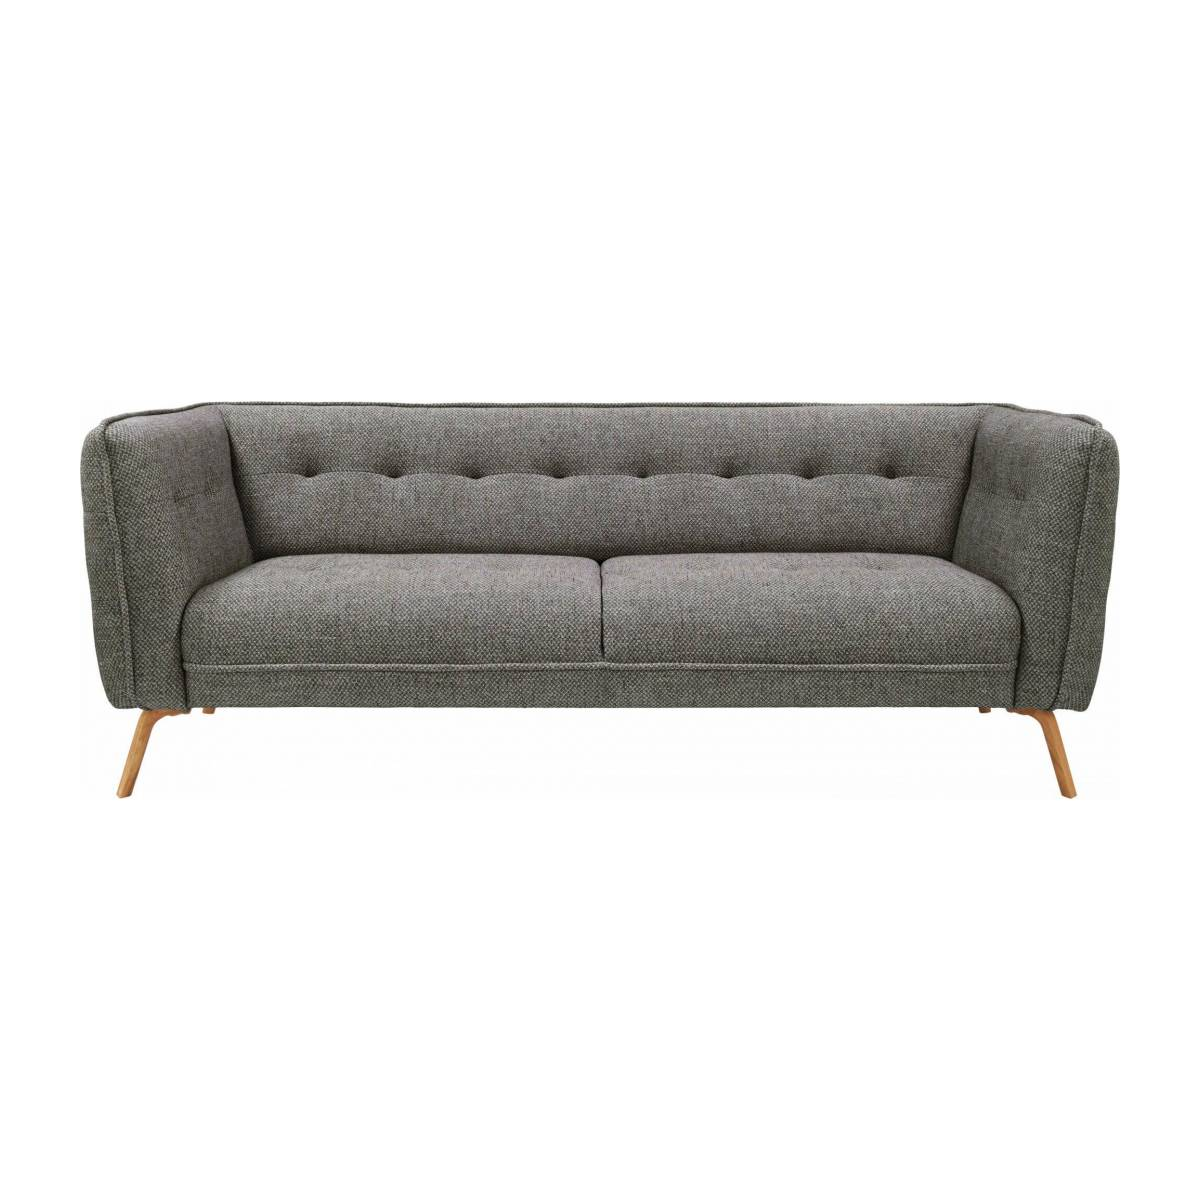 3 seater sofa in Bellagio fabric, night black and oak legs n°1